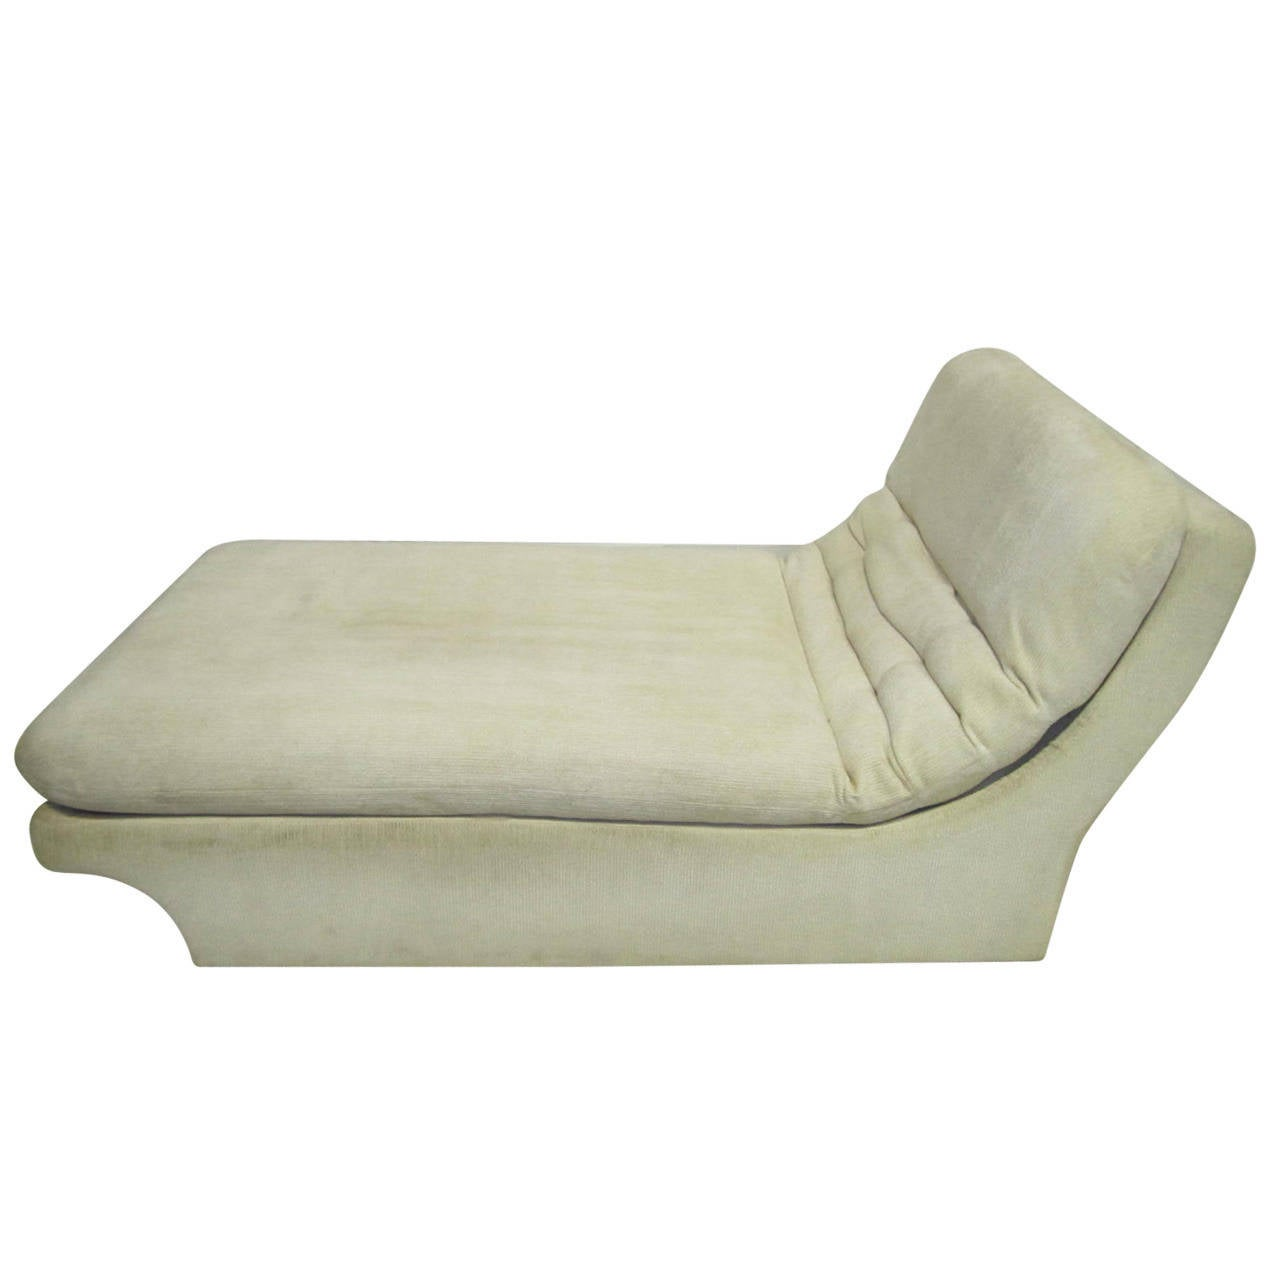 Vladimir kagan style chaise longue mid century modern at for Chaise longue moderne